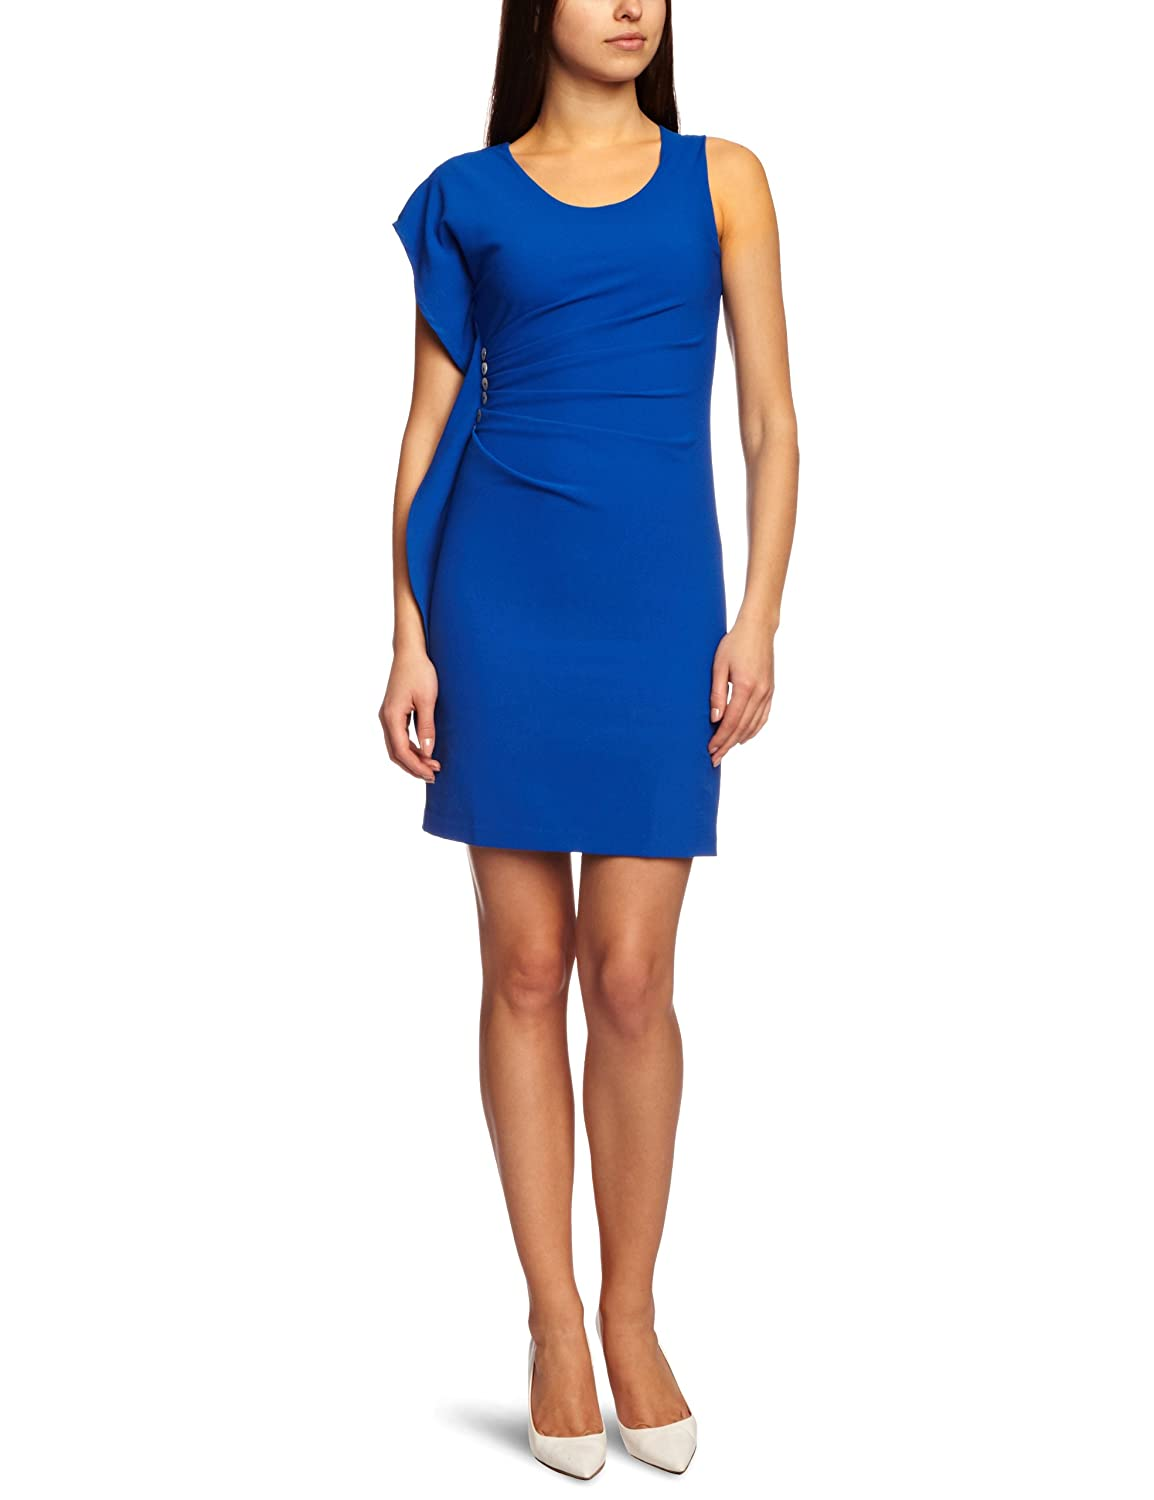 James Lakeland Band Ruched Sleeveless Women's Dress